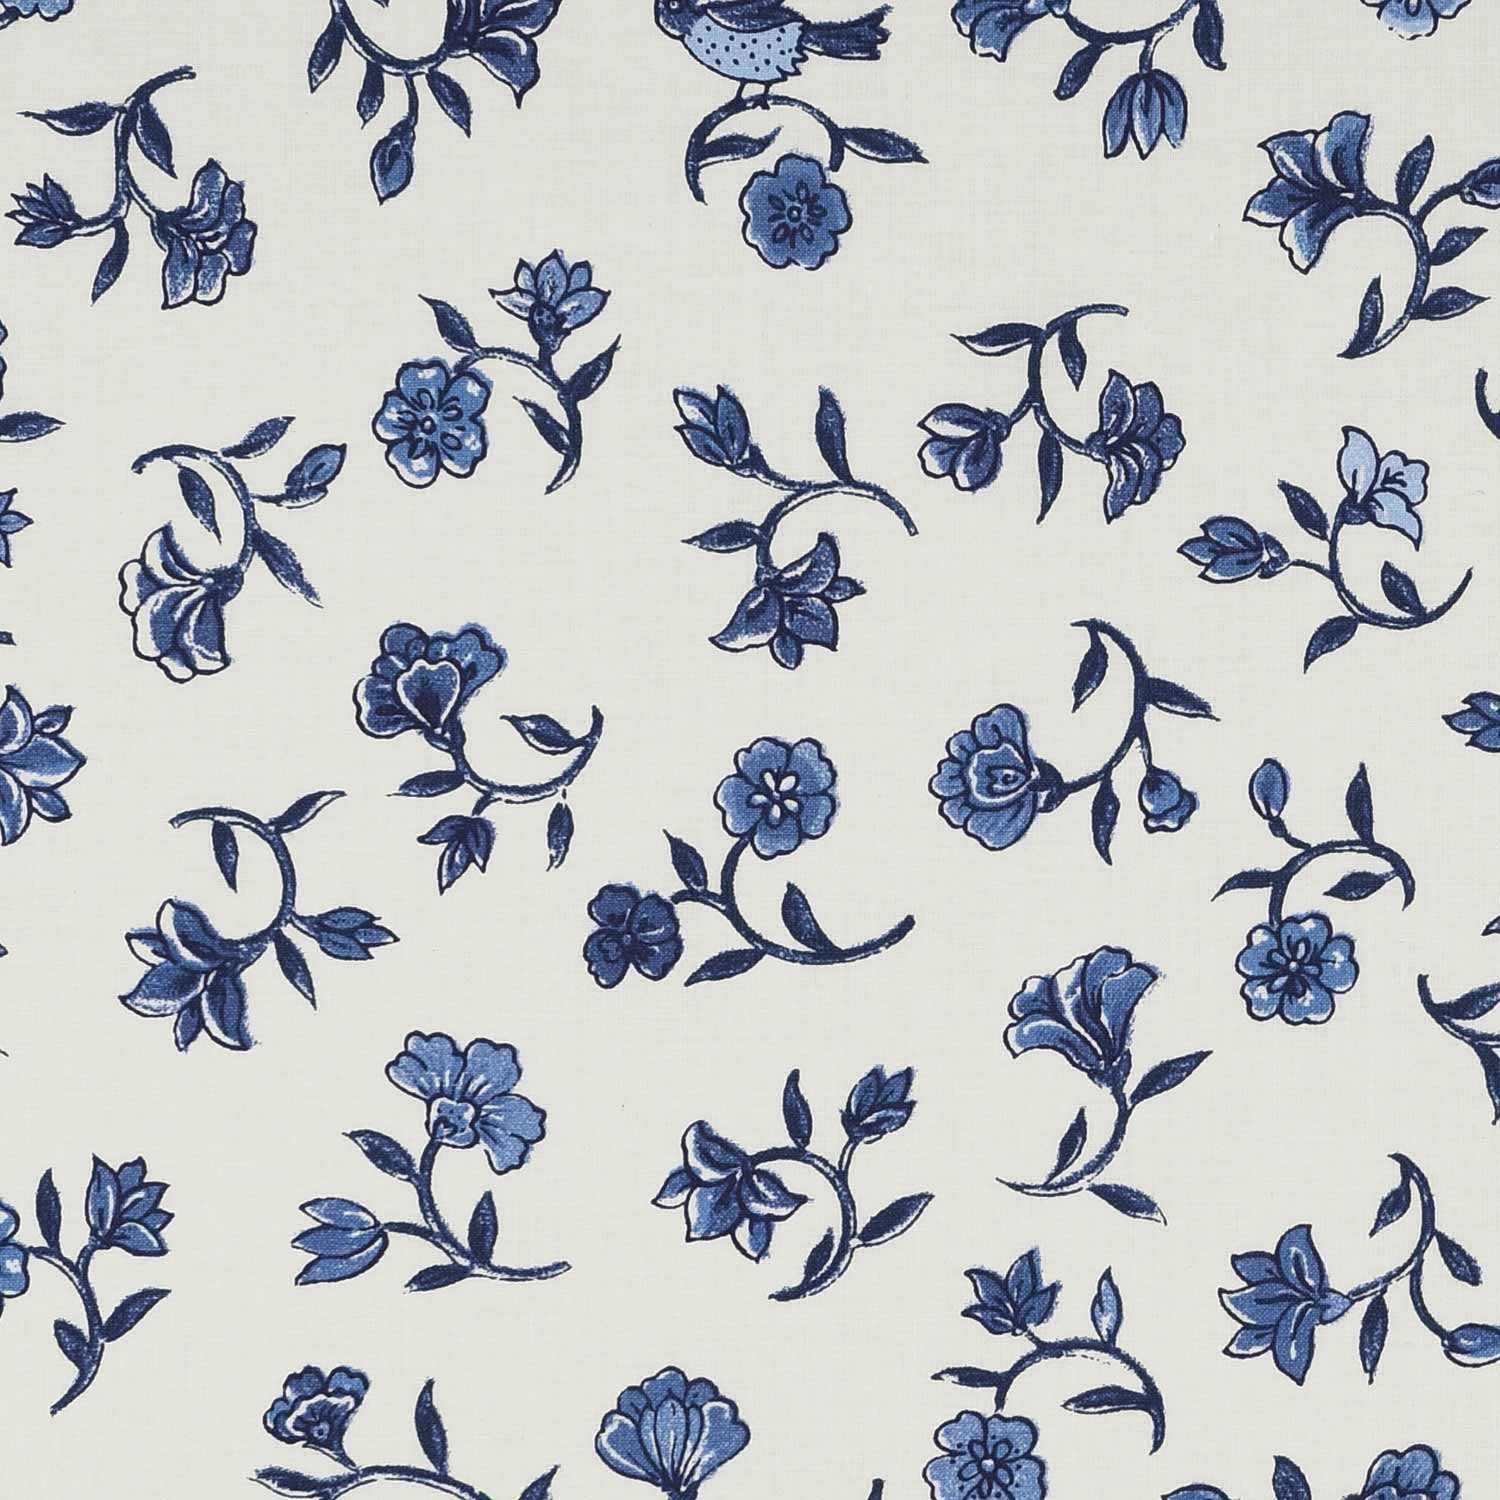 Flowers from Paradise (Delft blue)